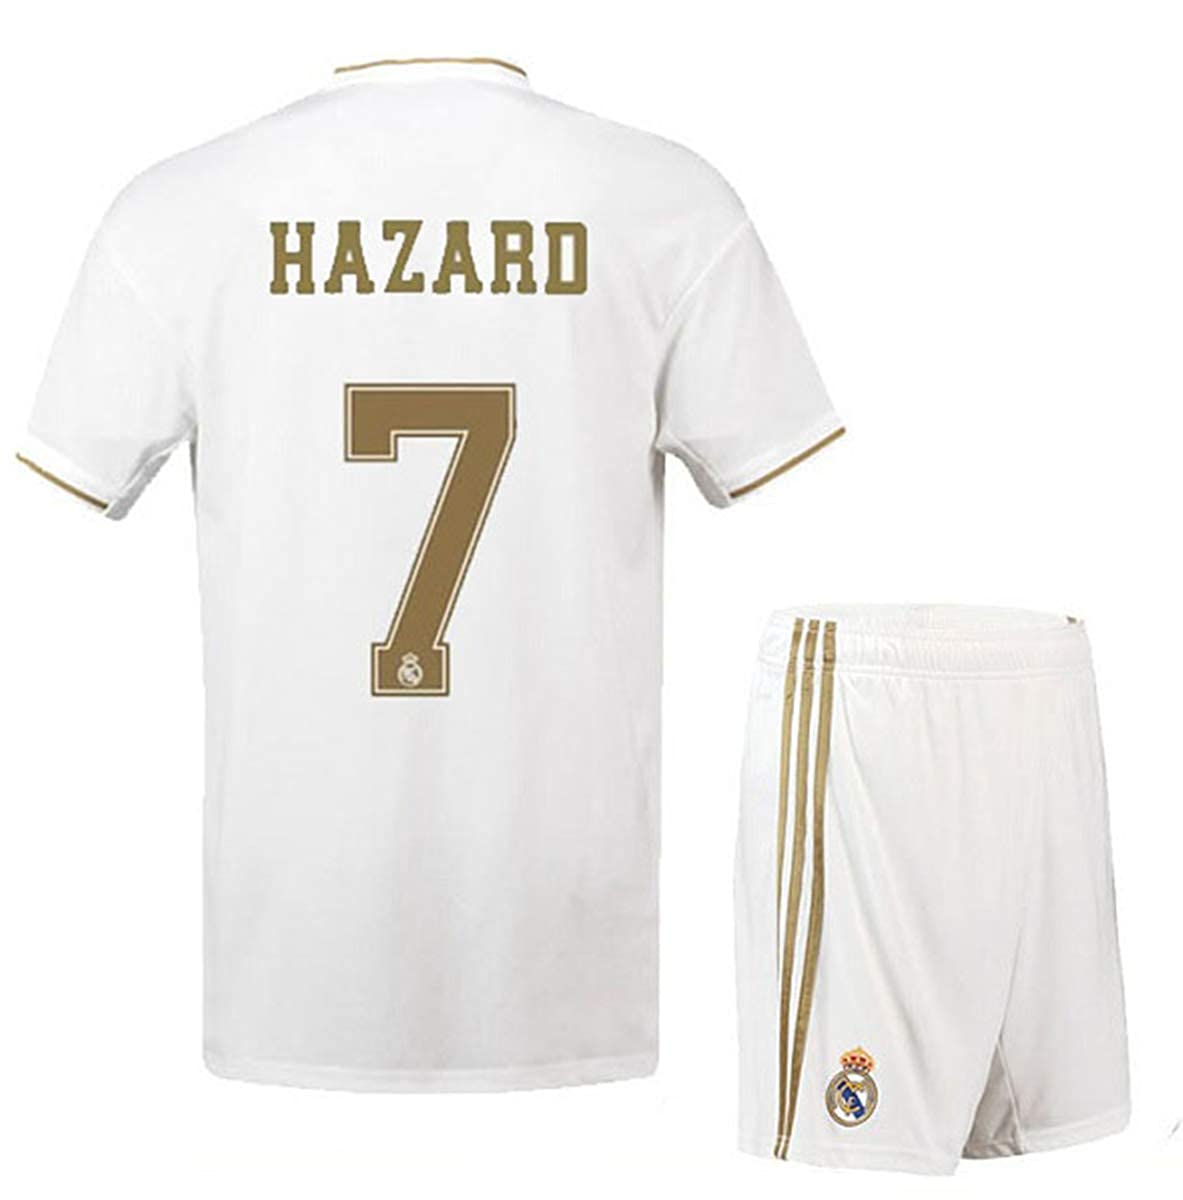 separation shoes 7ad37 b9c7e Real Madrid Hazard # 7 Soccer Jersey 2019-2020 Home Kids/Youths Jersey White